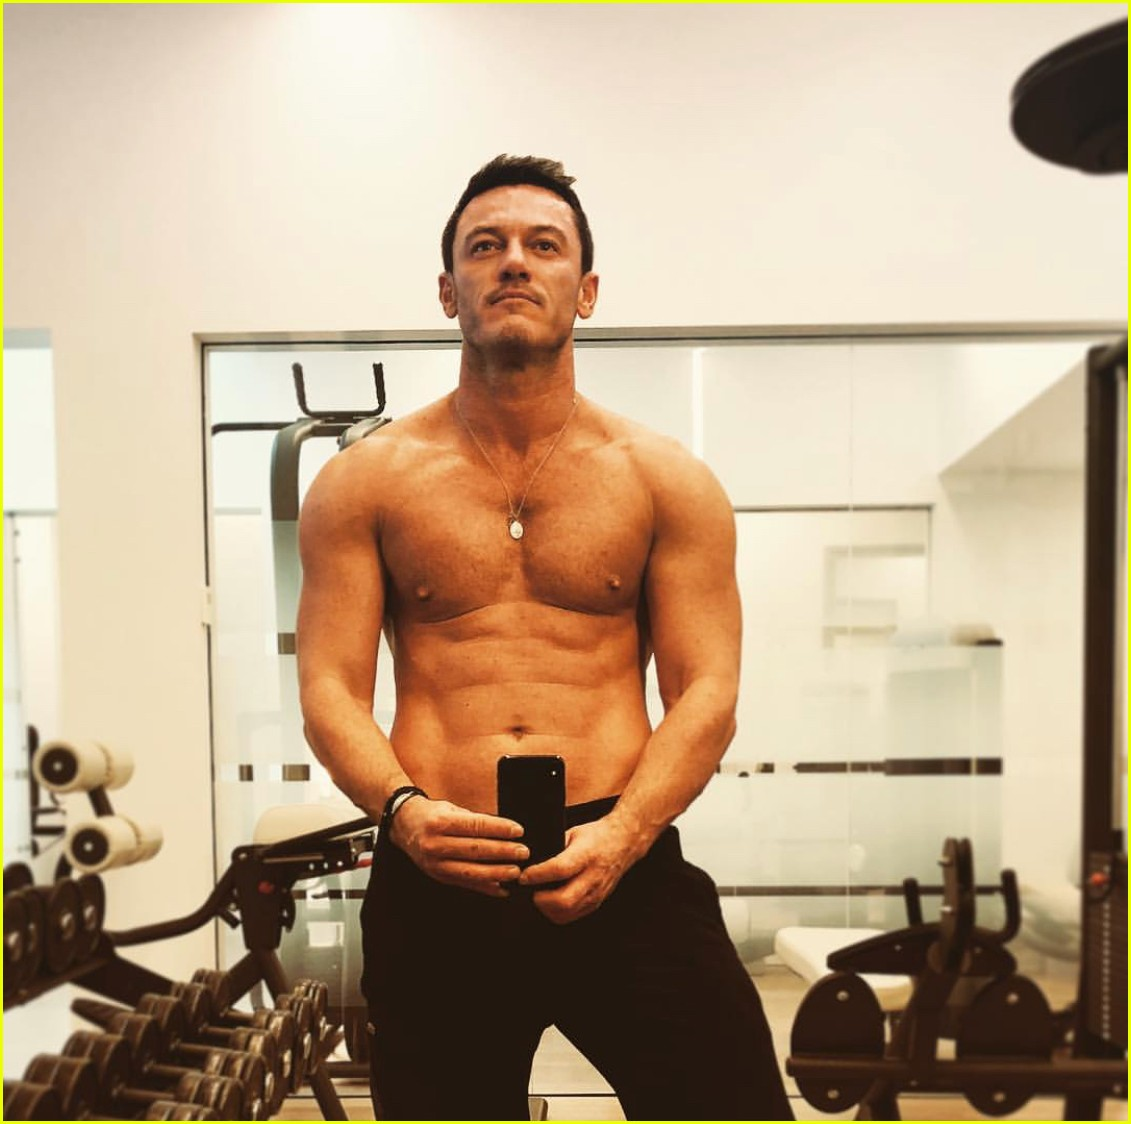 Luke Evans Goes Shirtless in Tiny Shorts at the Beach